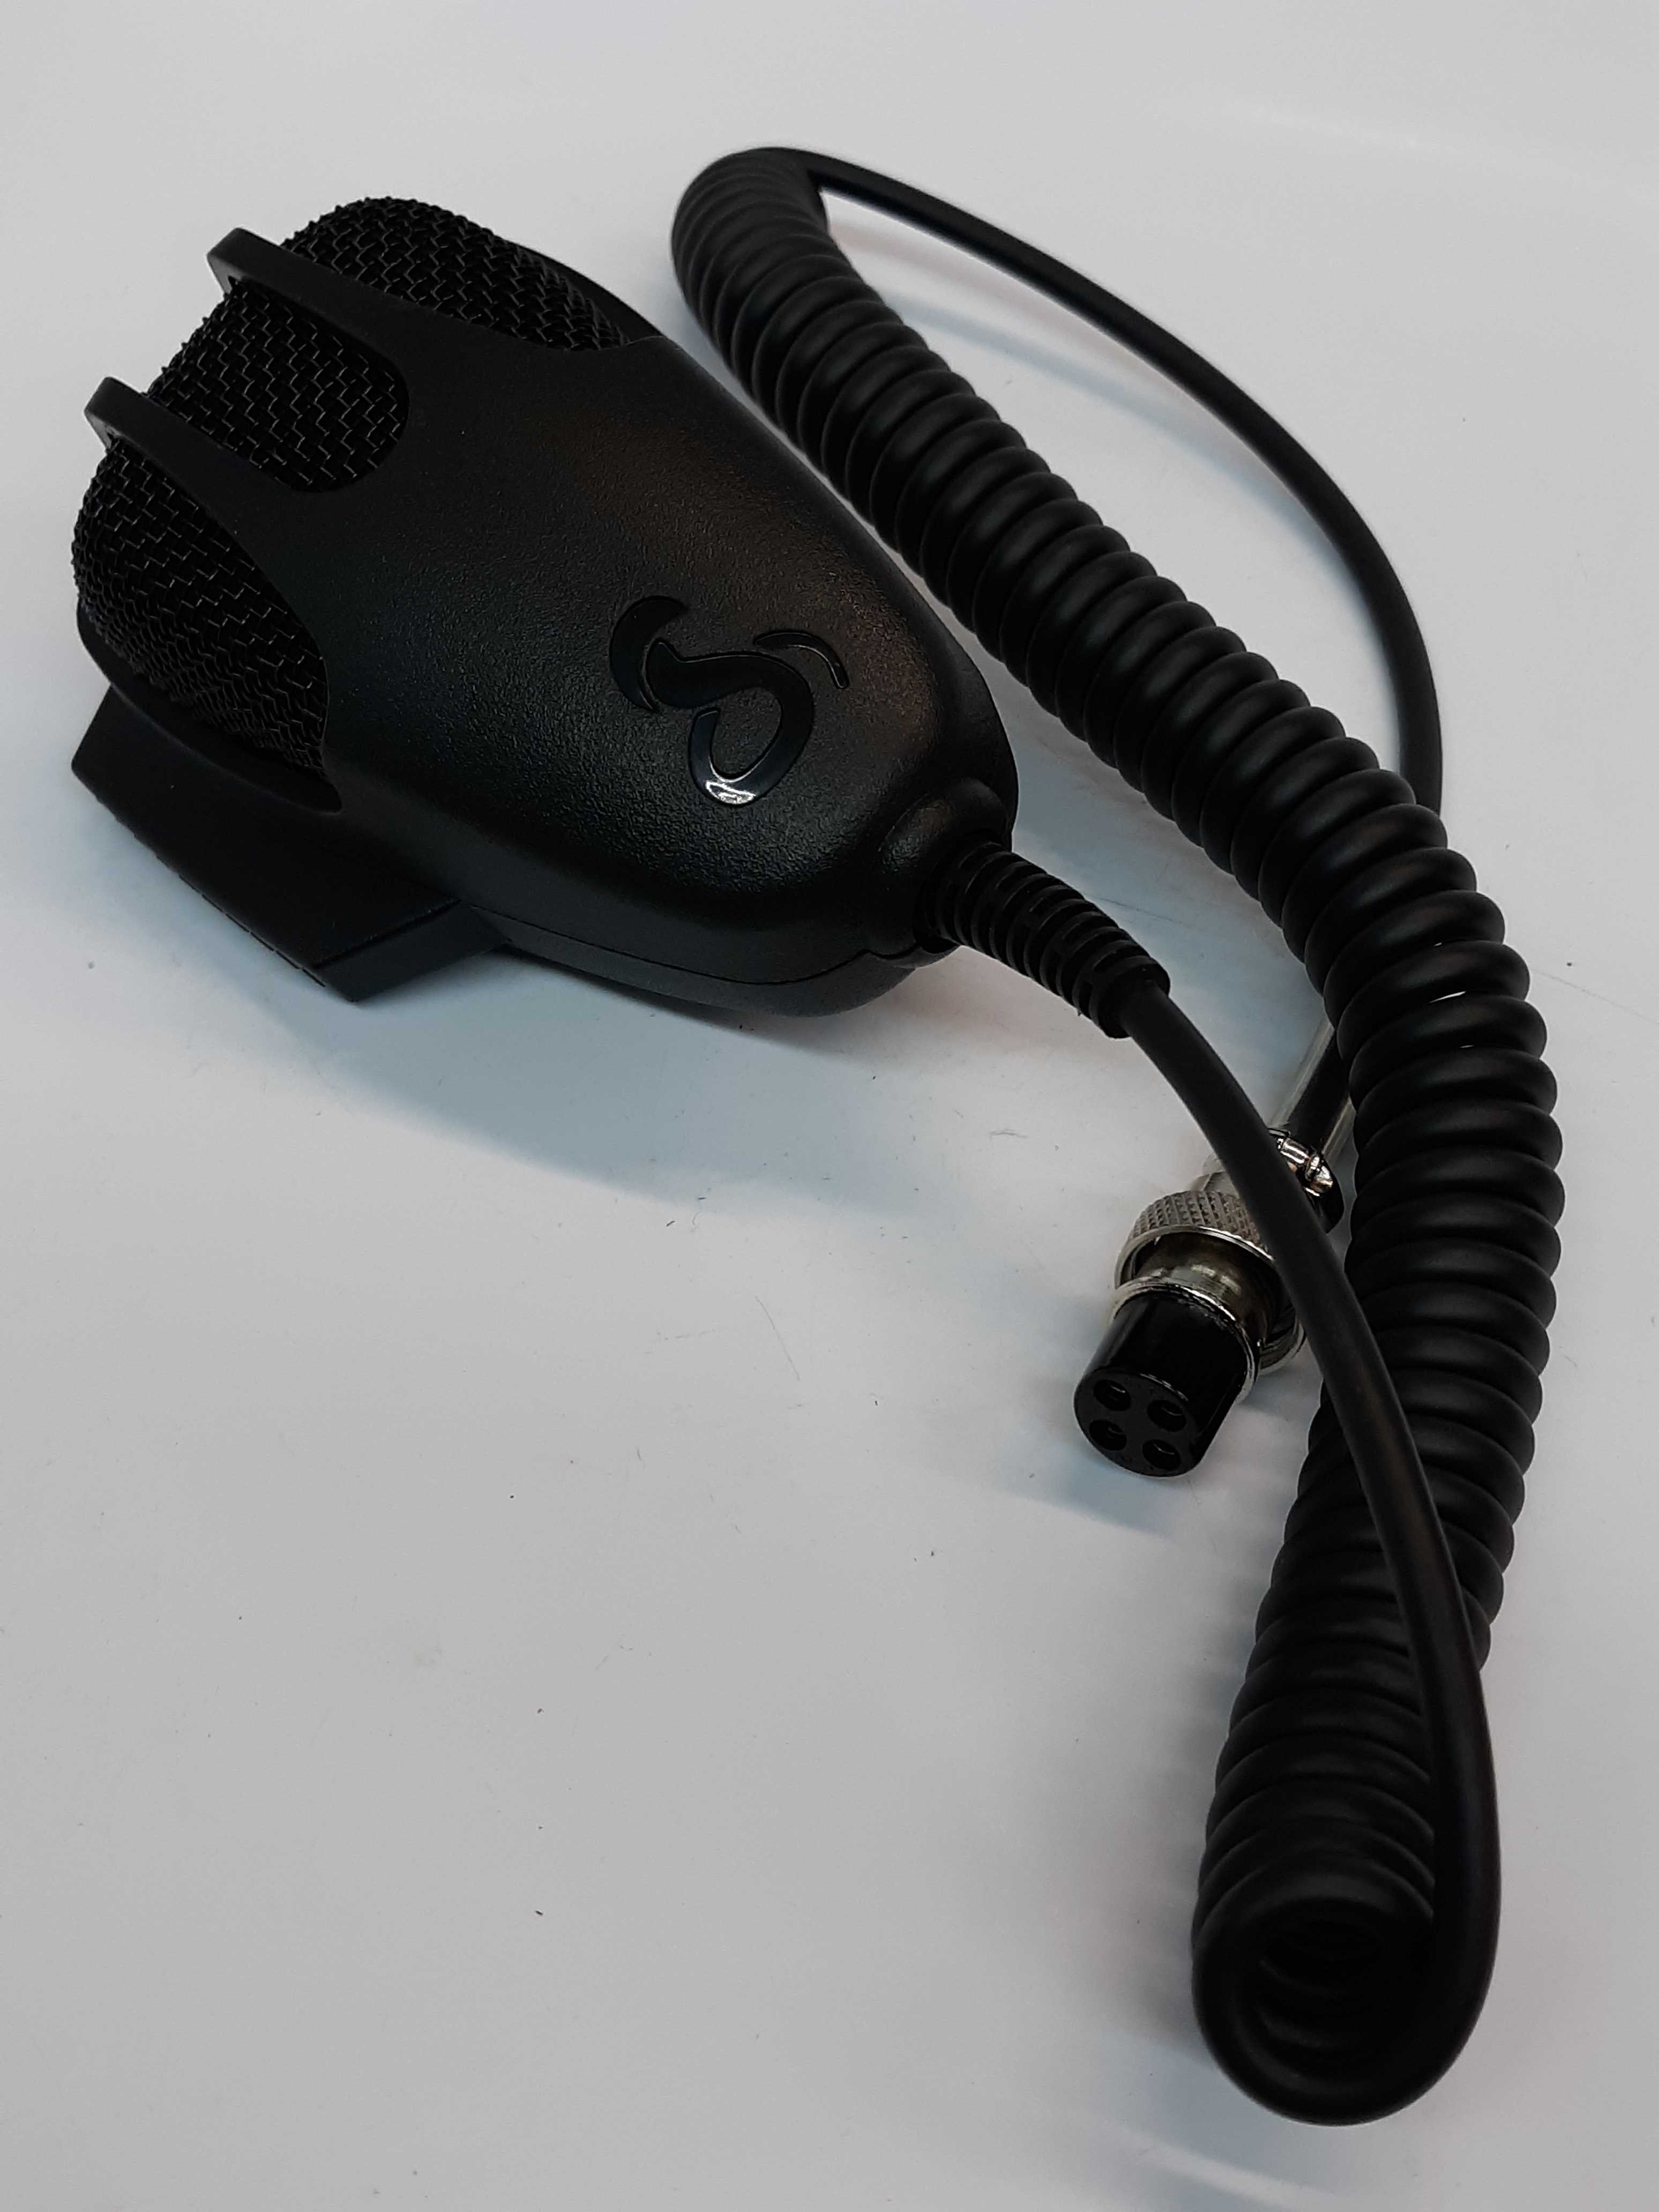 Cobra HG M77 FES 2 Cable Microphone